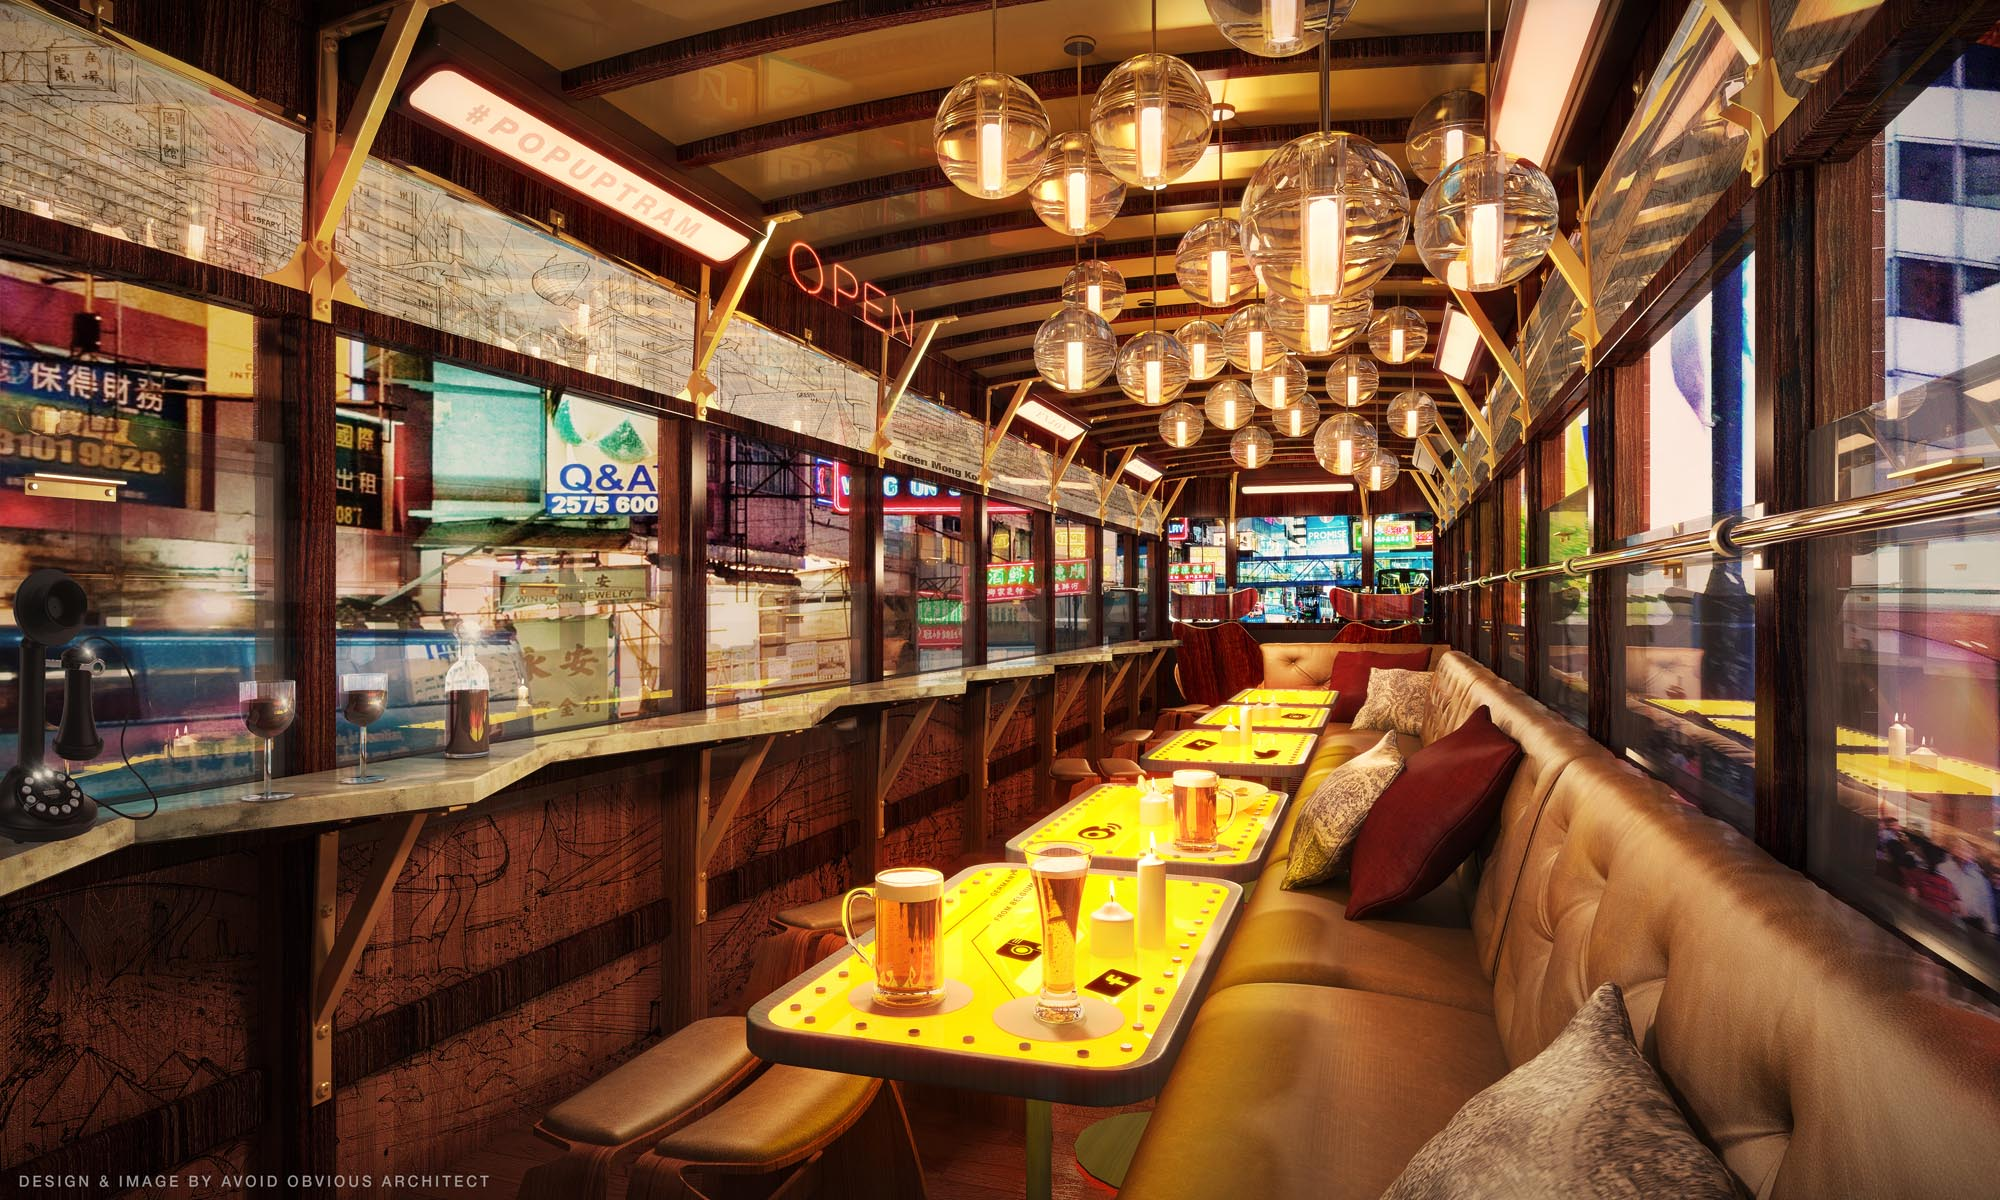 tram, tramways, hong kong, avoid obvious, popup, pop up, mobile architecture, restaurant, shop, runways, interior design, vintage, contextual, old, new, history, preservation, revitalization